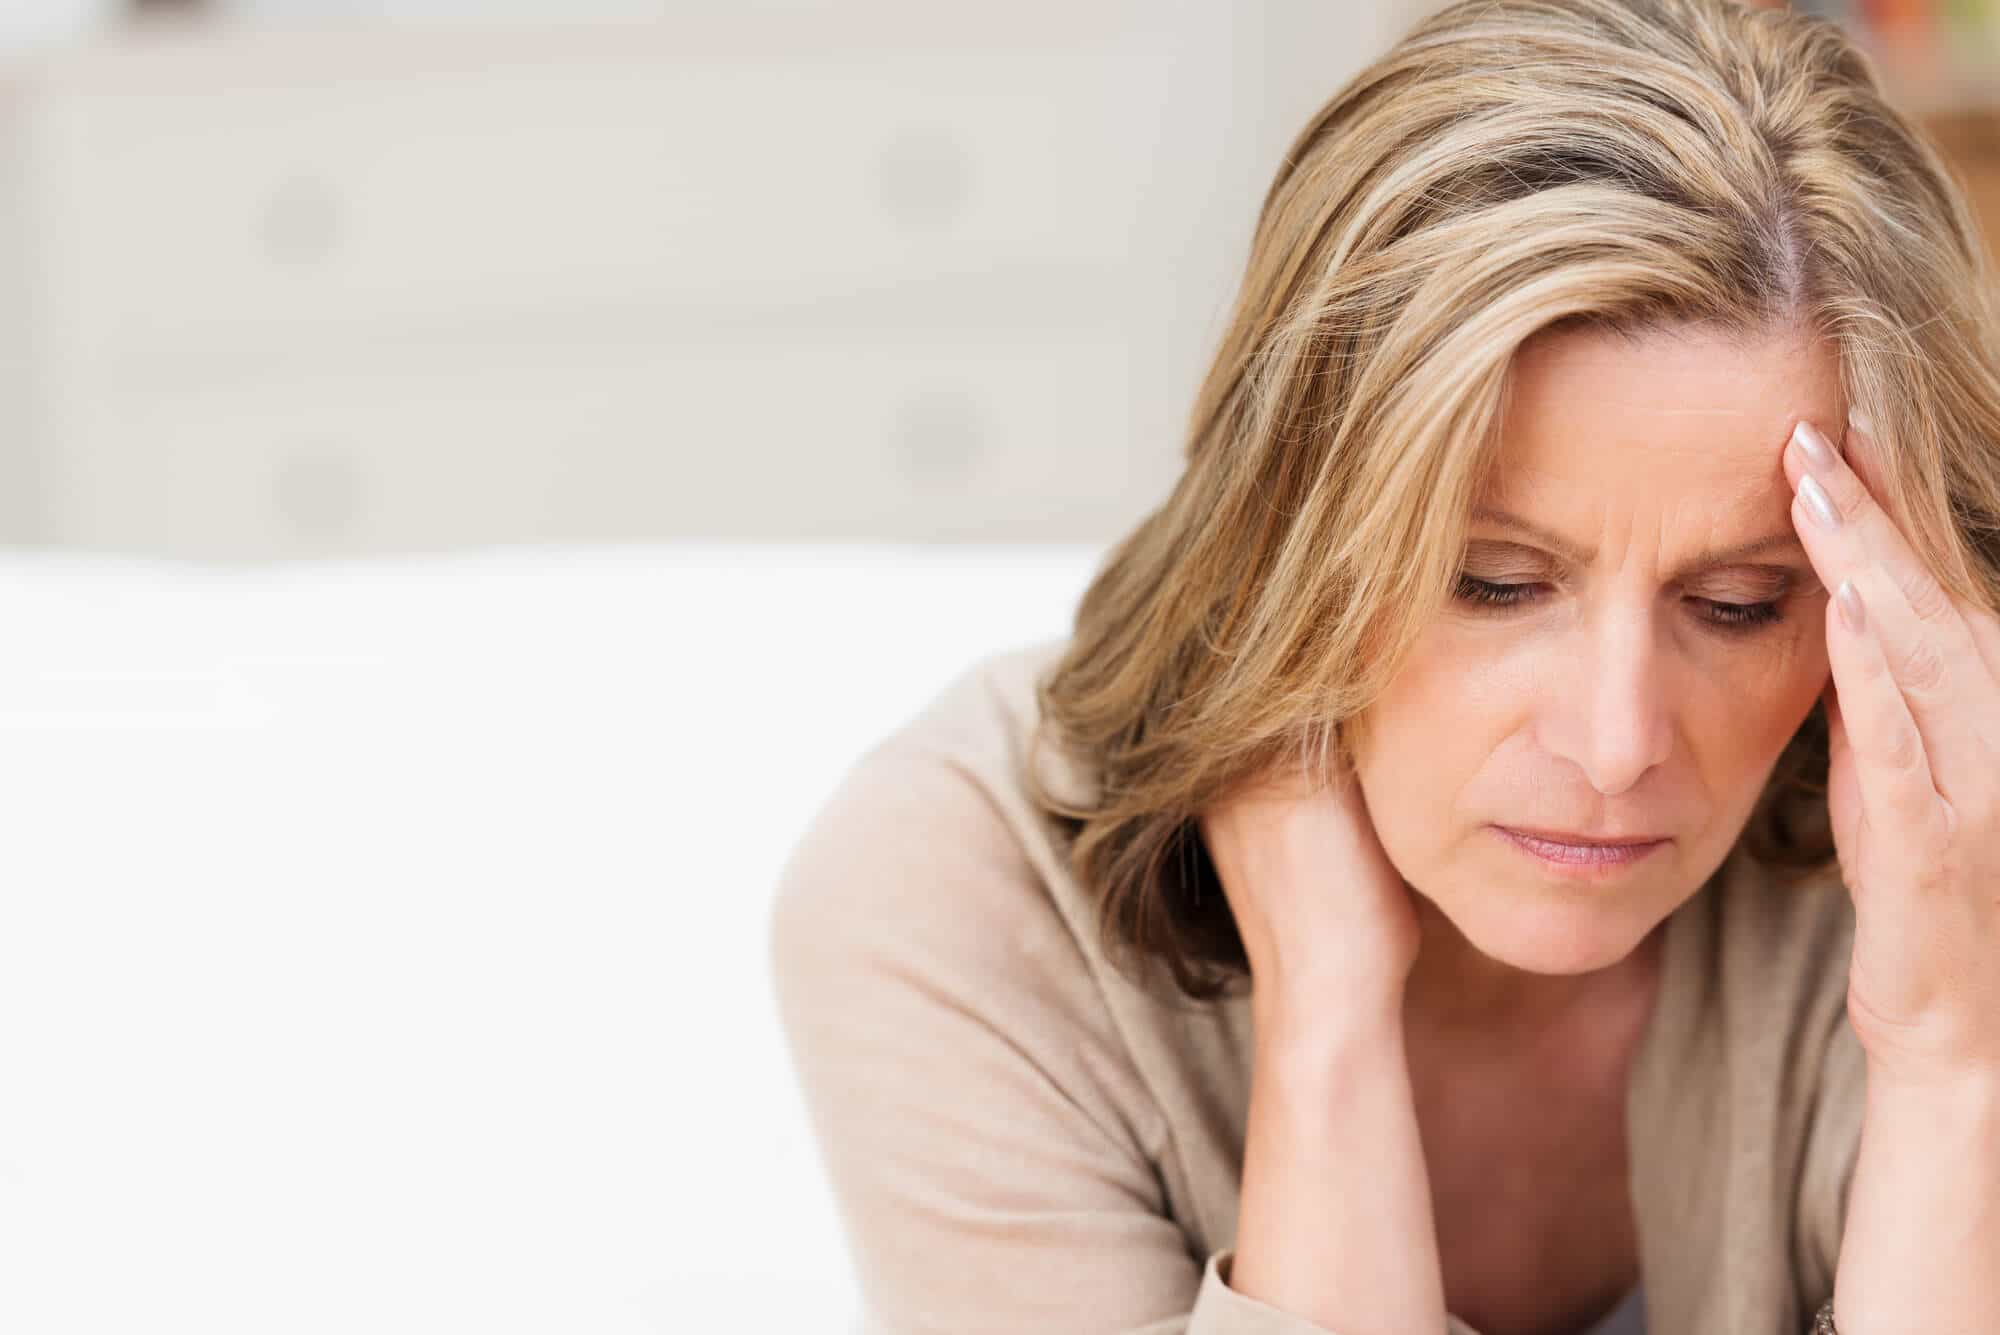 who offers alcohol rehab center in florida?